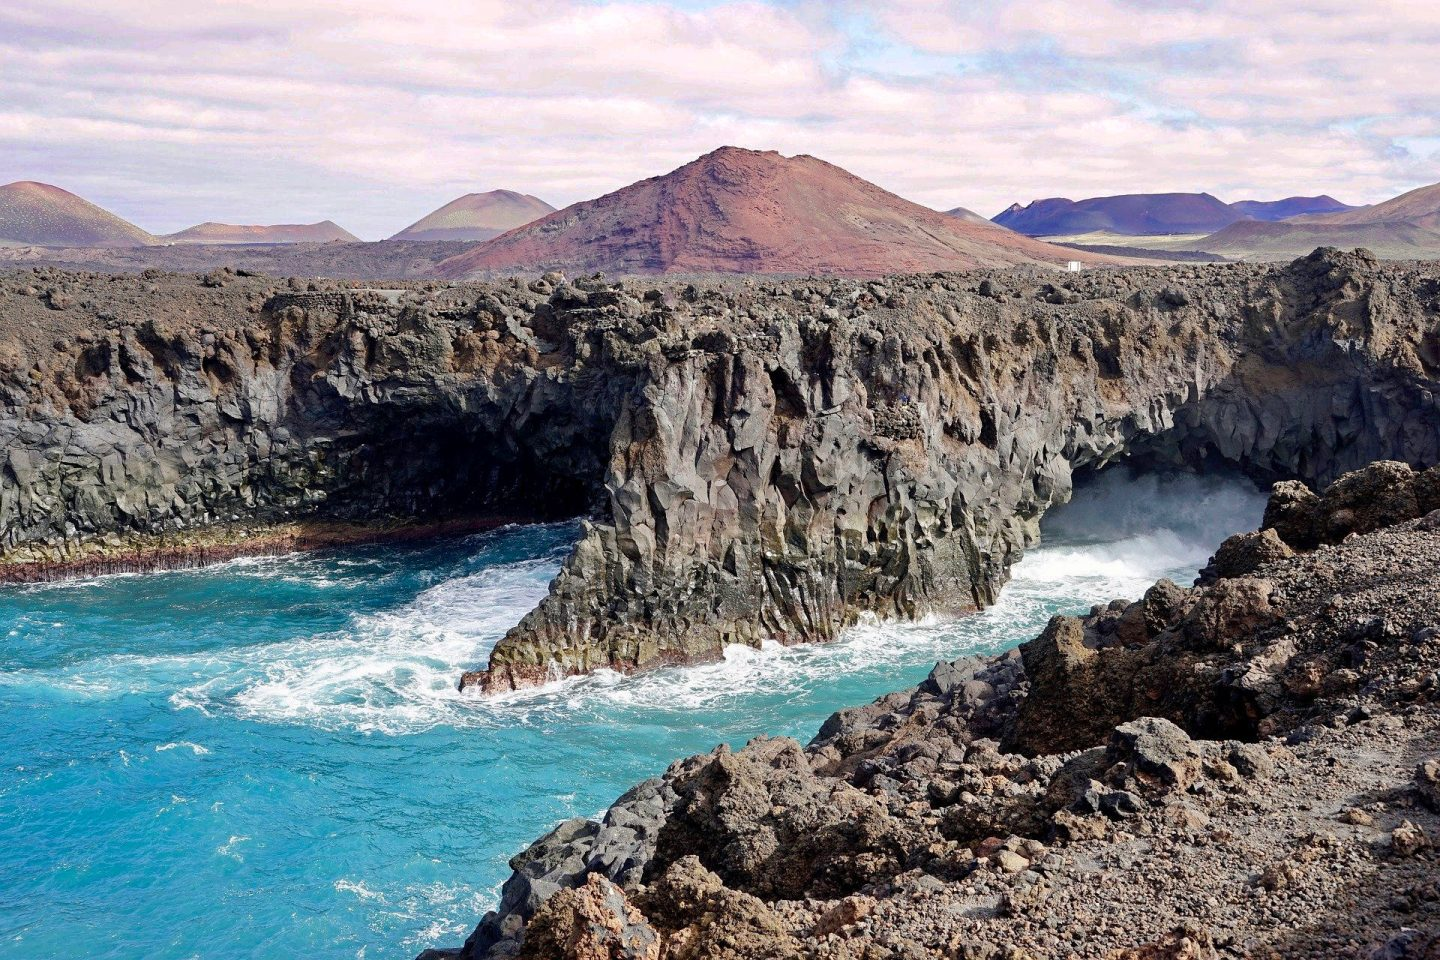 Los Hervideros in Lanzarote, showing the sea smashing against black rock, with a volcanic hill in the background